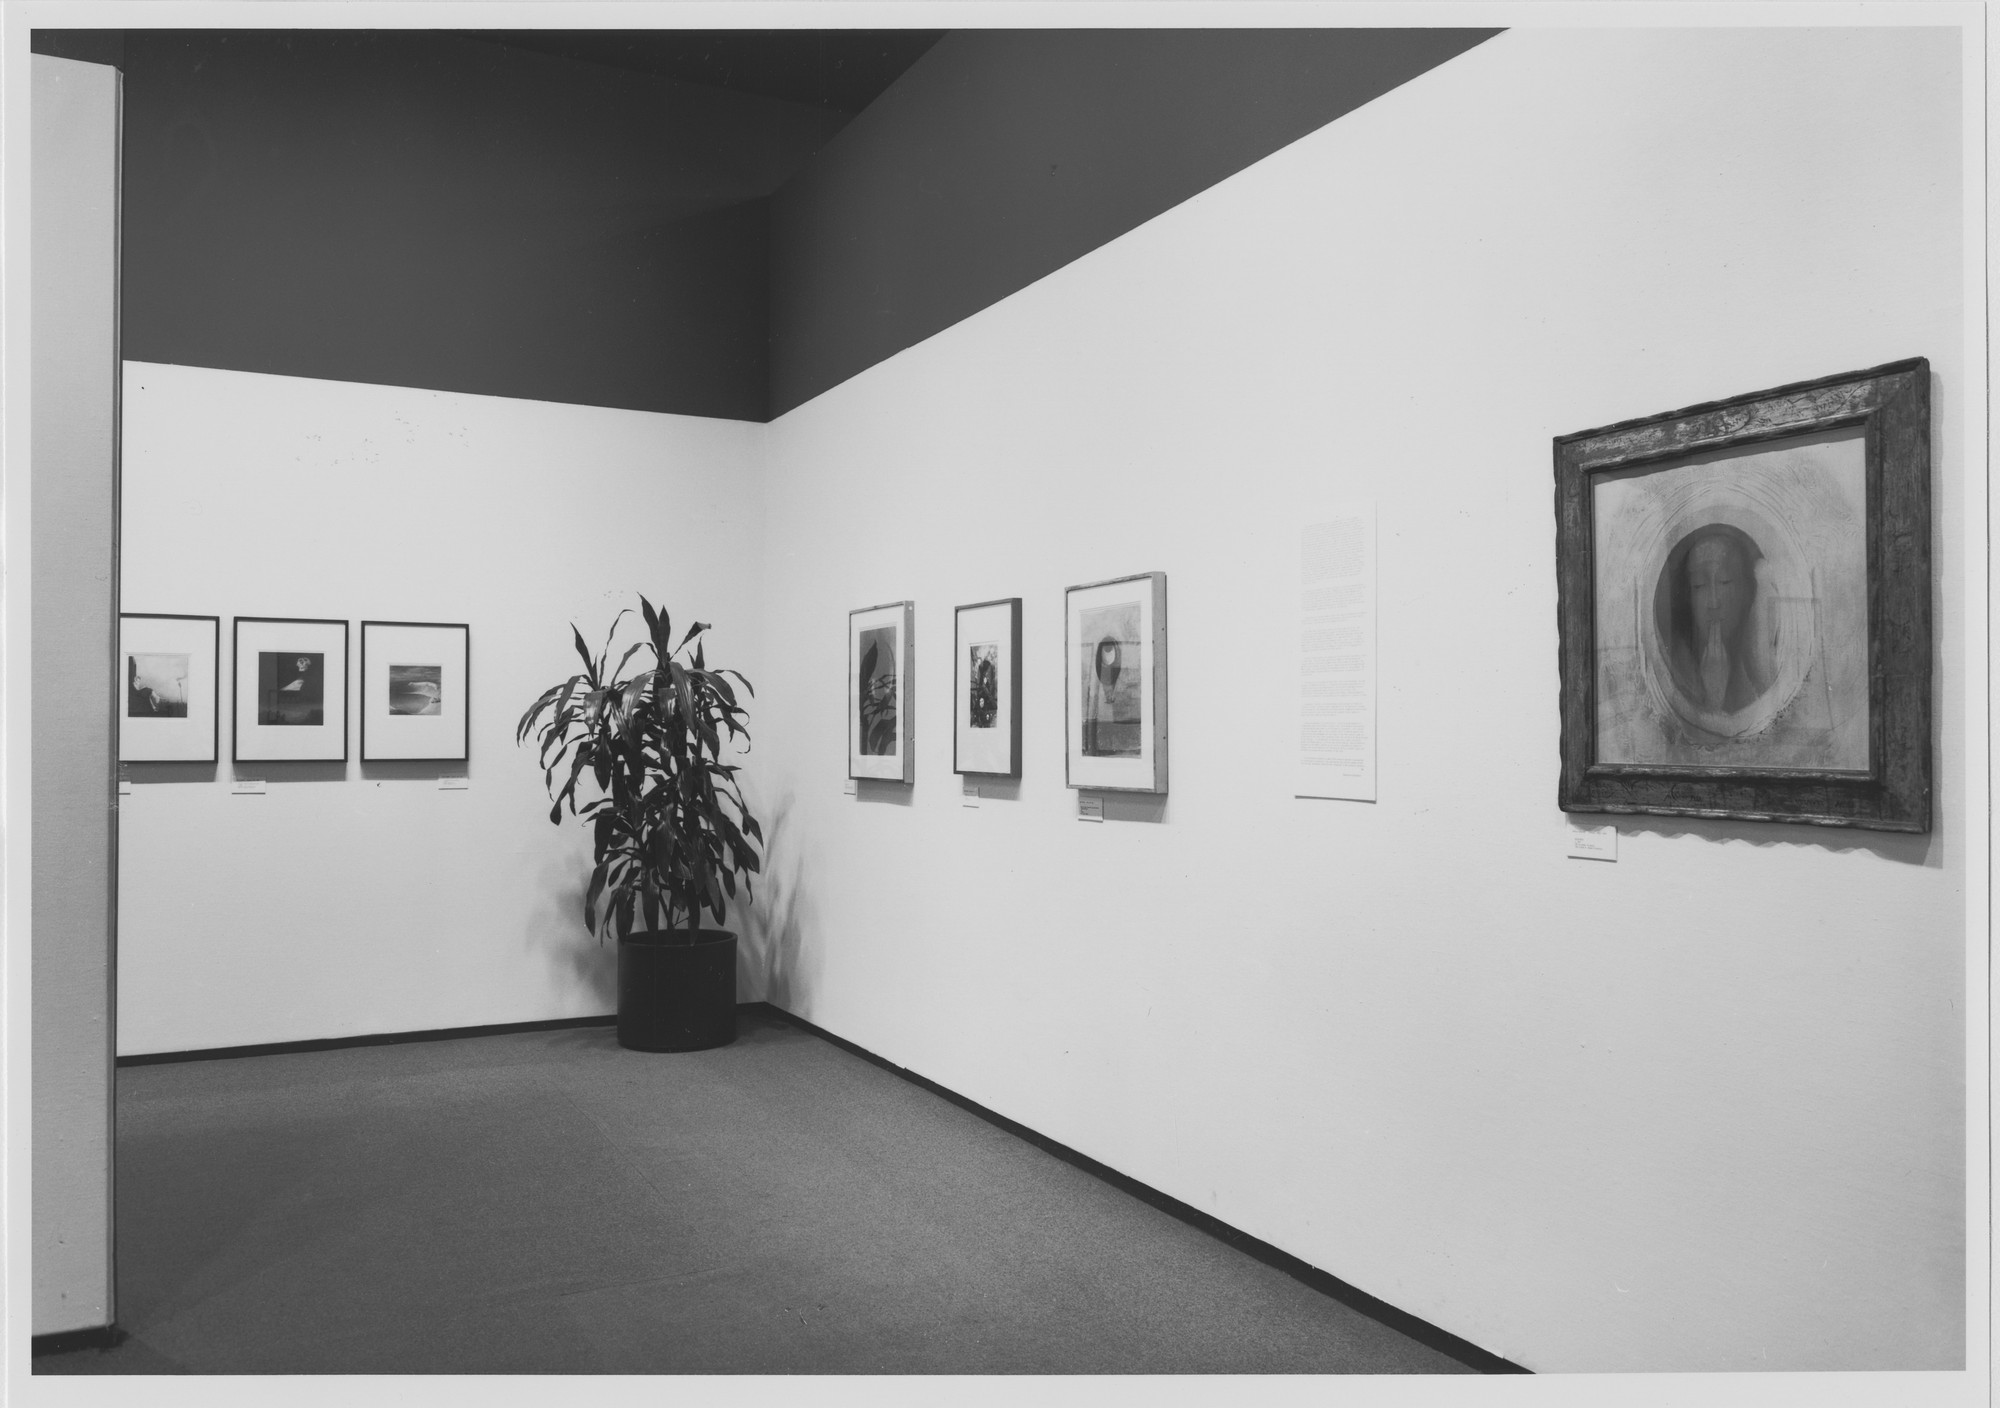 "Installation view of the exhibition, ""The Symbolist Aesthetic"" December 22, 1980–March 10, 1981. Photographic Archive. The Museum of Modern Art Archives, New York. IN1300.1. Photograph by Katherine Keller."